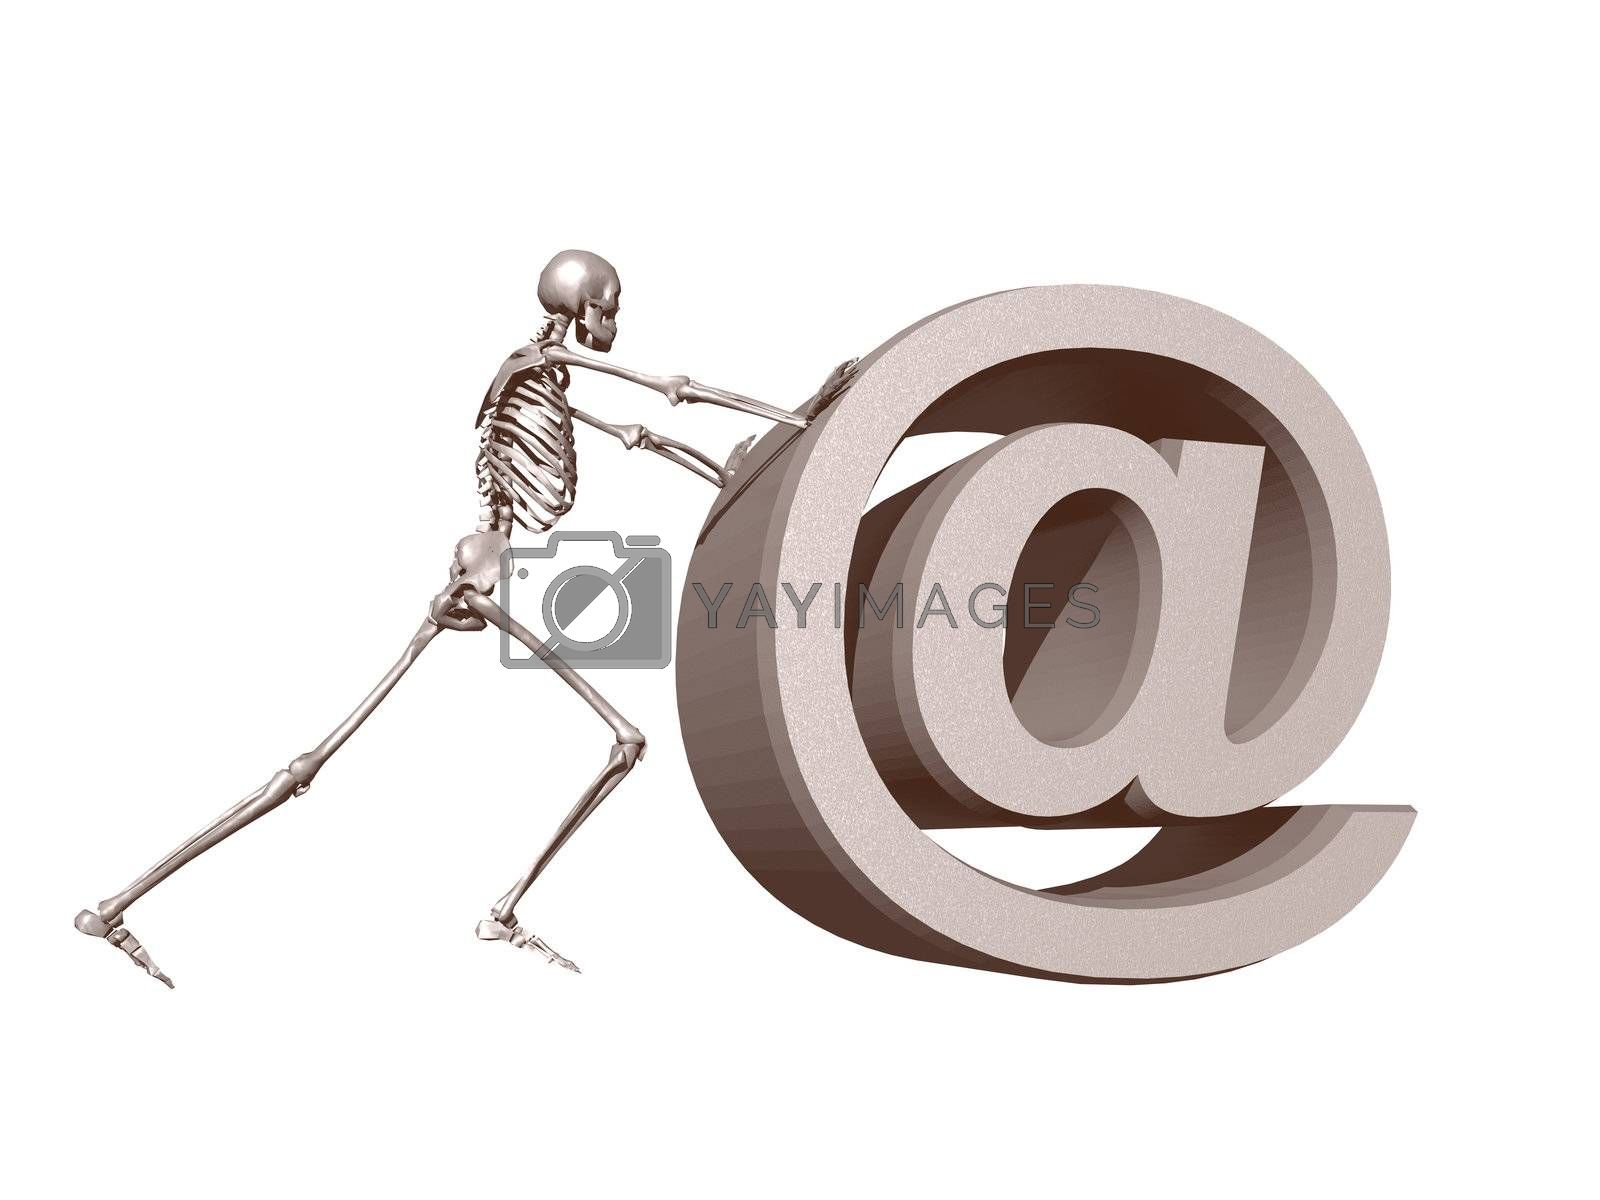 Royalty free image of death mail by drizzd